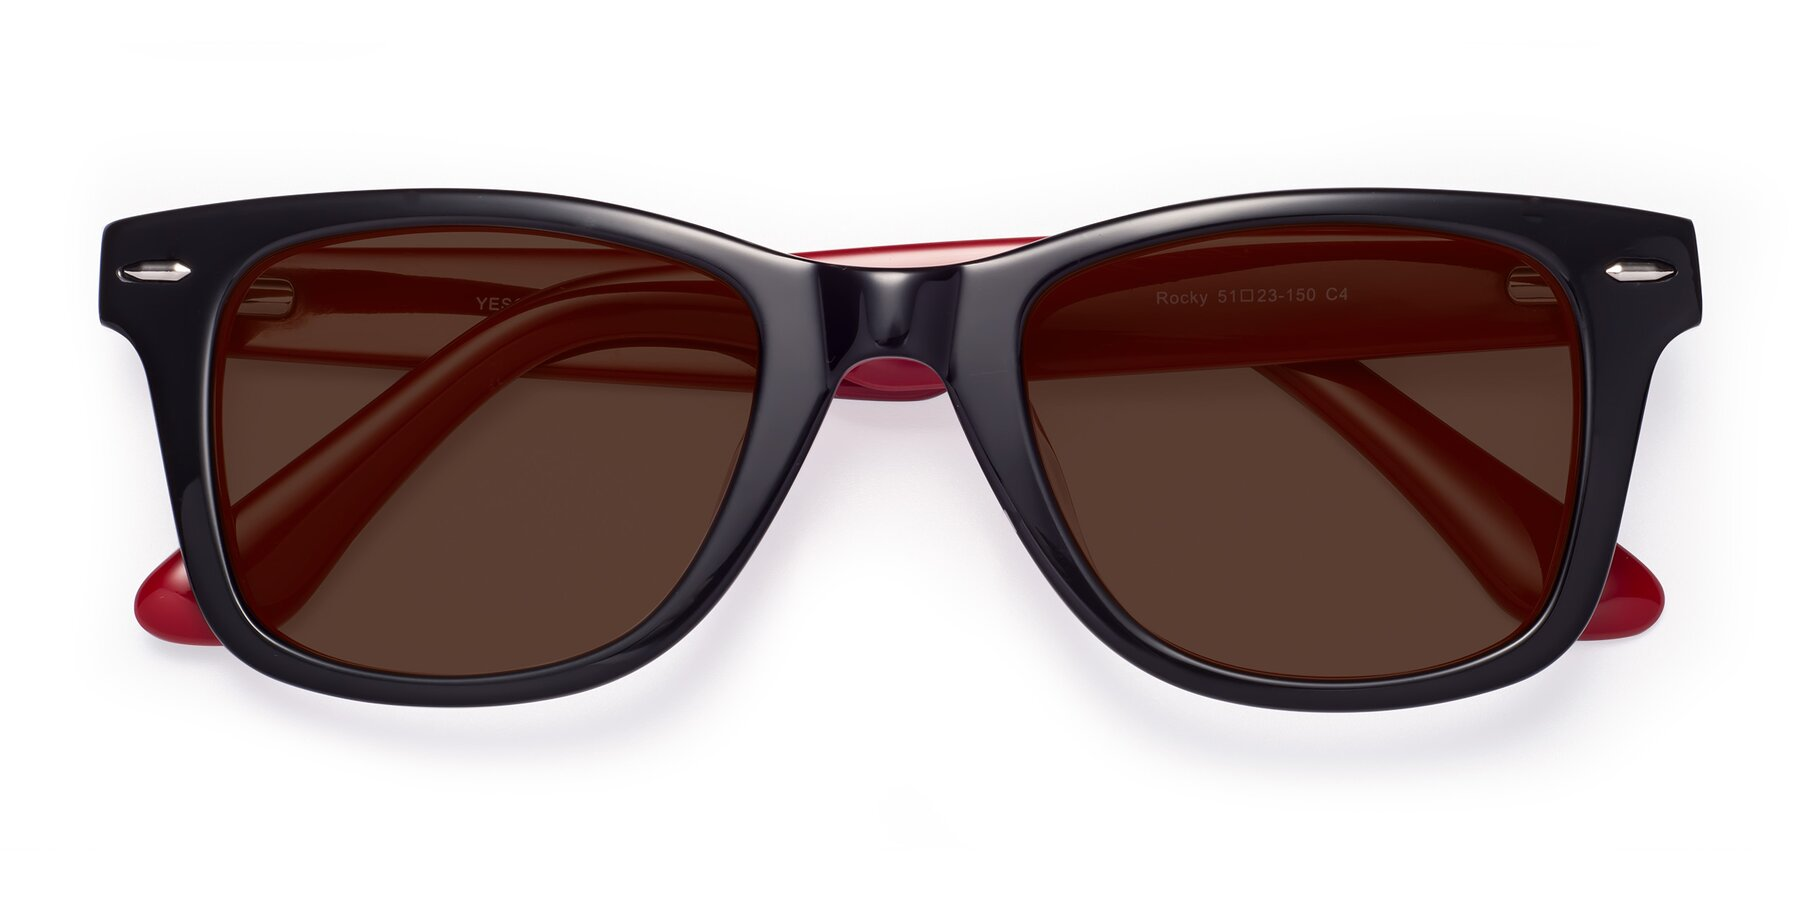 Folded Front of Rocky in Black-Wine with Brown Tinted Lenses